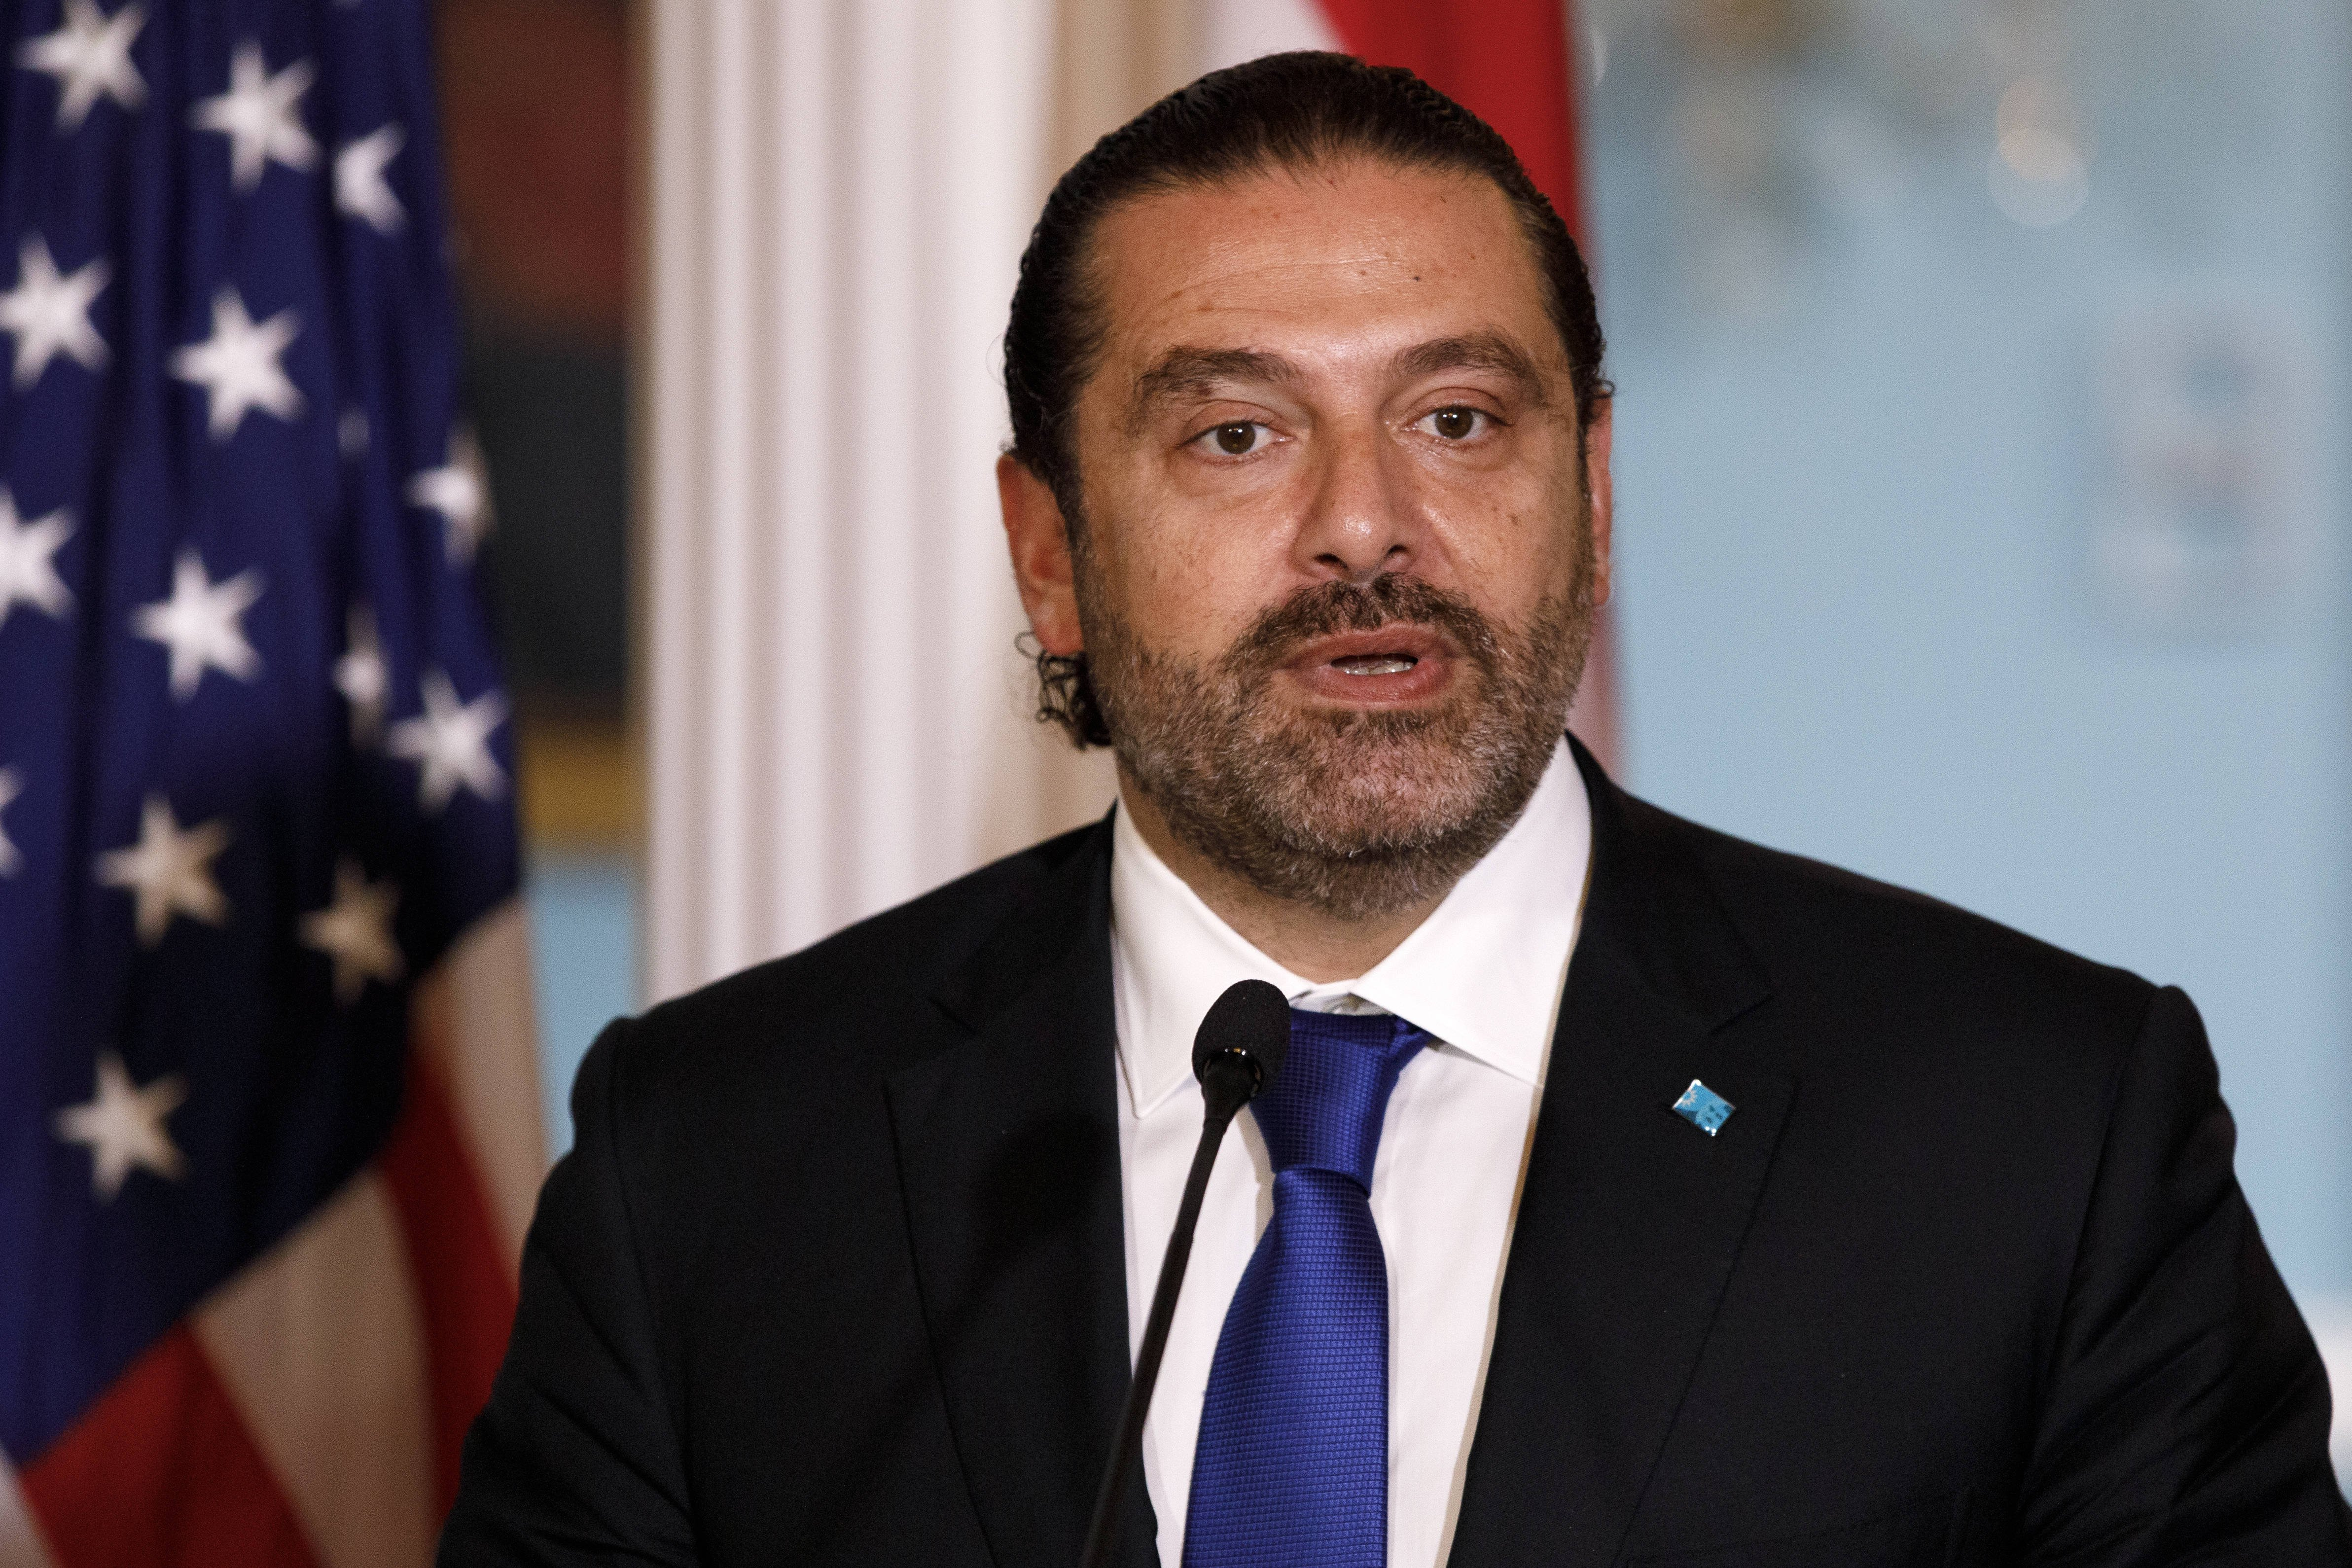 The Lebanese Prime Minister Saad Hariri at a press conference with the us Secretary of state Mike Pompeo, the 15. august 2019.